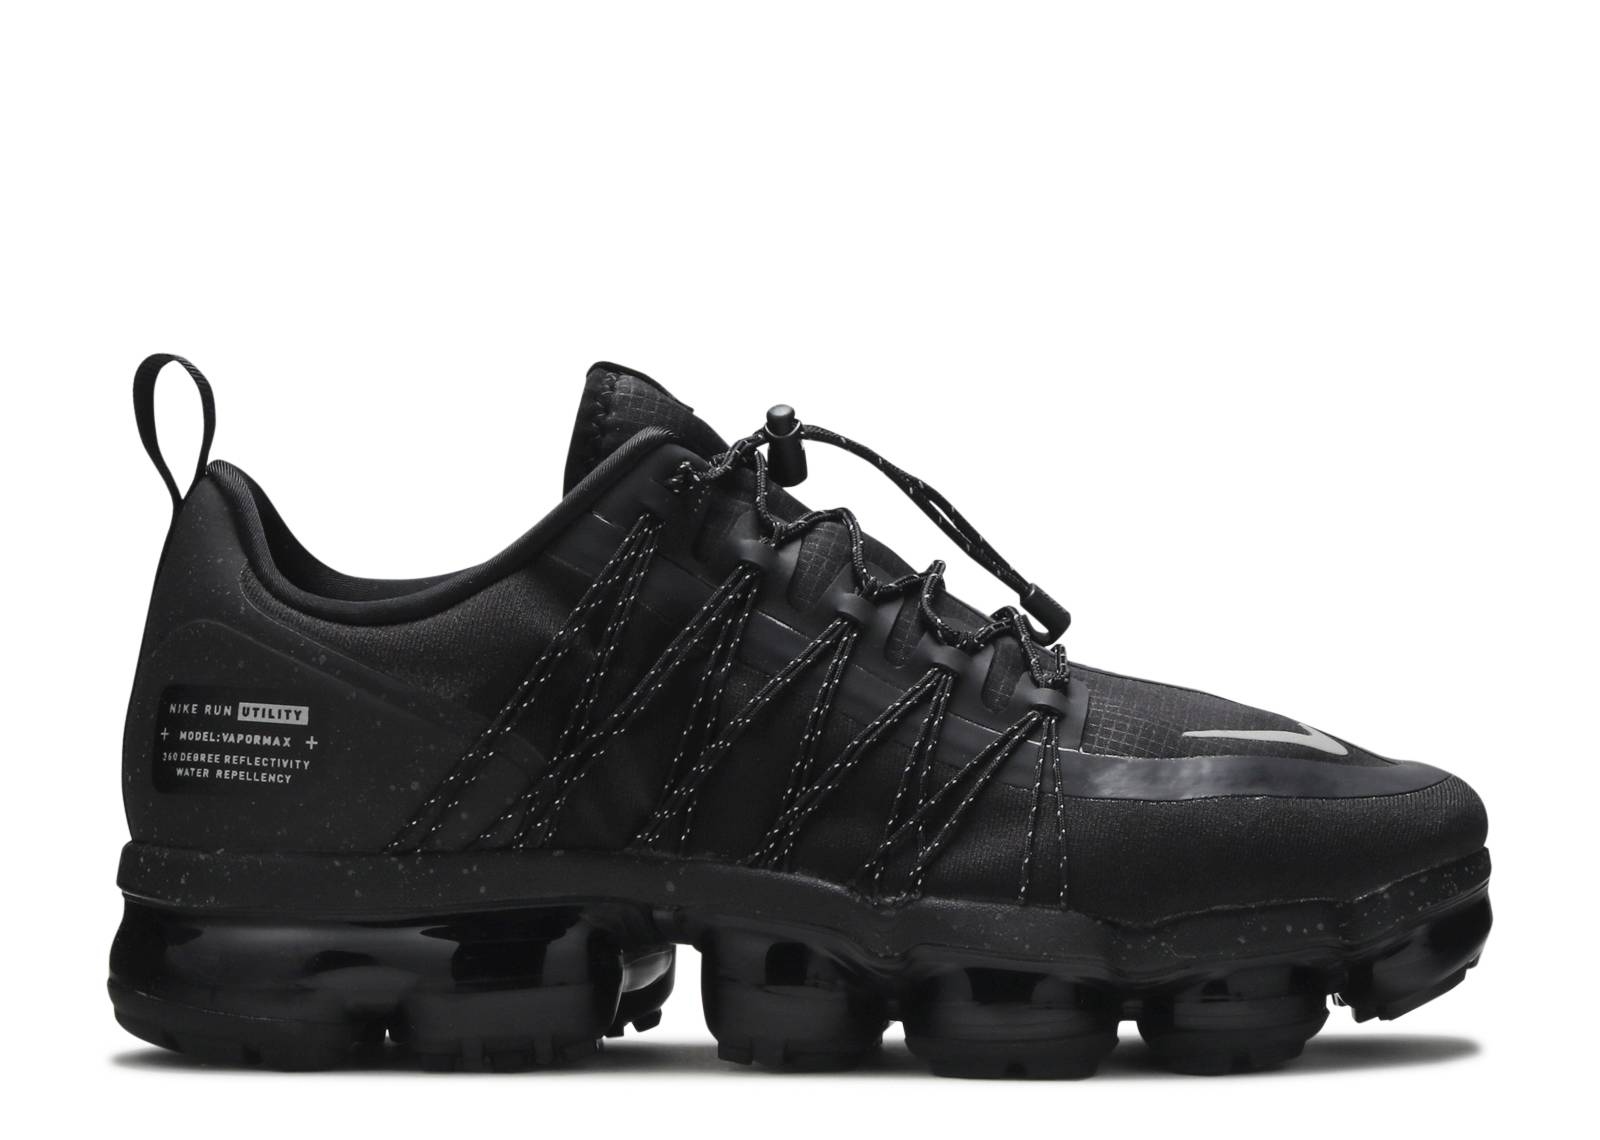 dfe83569c5f nike. nike air vapormax run utility. Out of stock